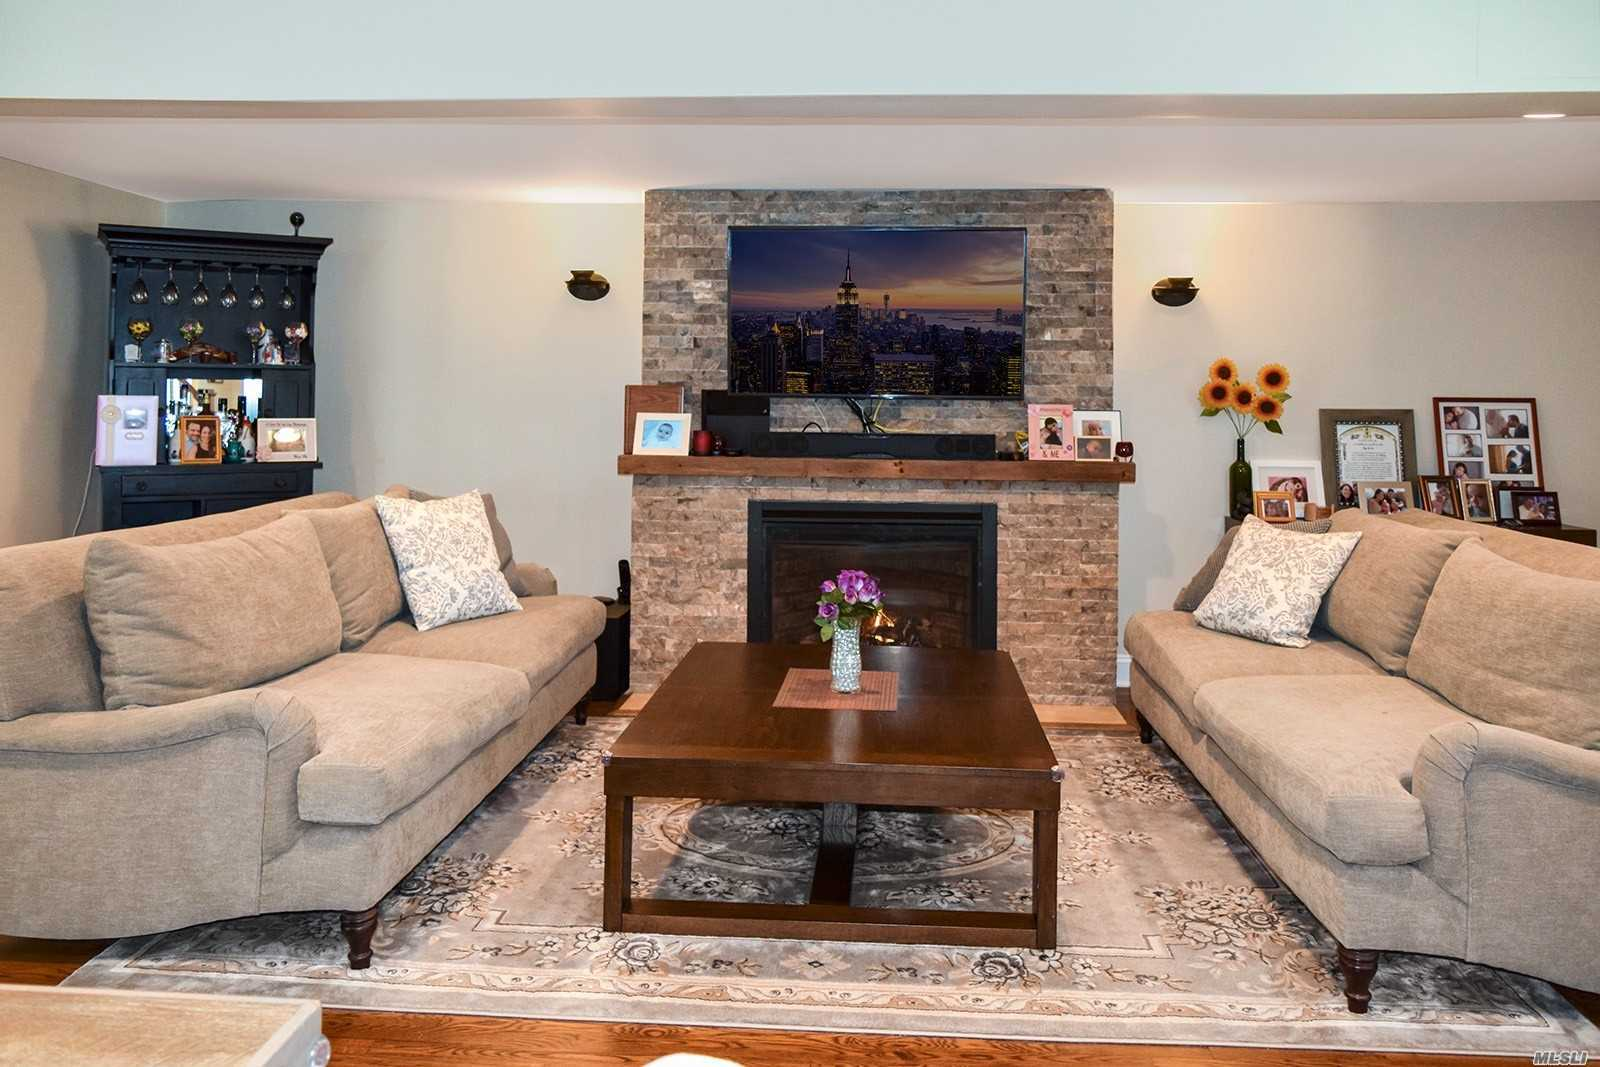 Diamond Colonial Featuring A Custom Granite Eat In Kitchen, Large Living Room W/ Gorgeous Gas Fireplace, Wood Floors, Spectacular Master En-Suite W/Full Bath & Custom Closet, 2 Additional Large Bedrooms. New Roof, New Siding, New Windows, New Central Air Conditioning System(2016), Too Much To List & A Must See To Appreciate!!! Hewlett/Woodmere Schools! Near Shopping & Transportation!!! Taxes W/Star $15175.18. Taxes Are Being Grieved!!!